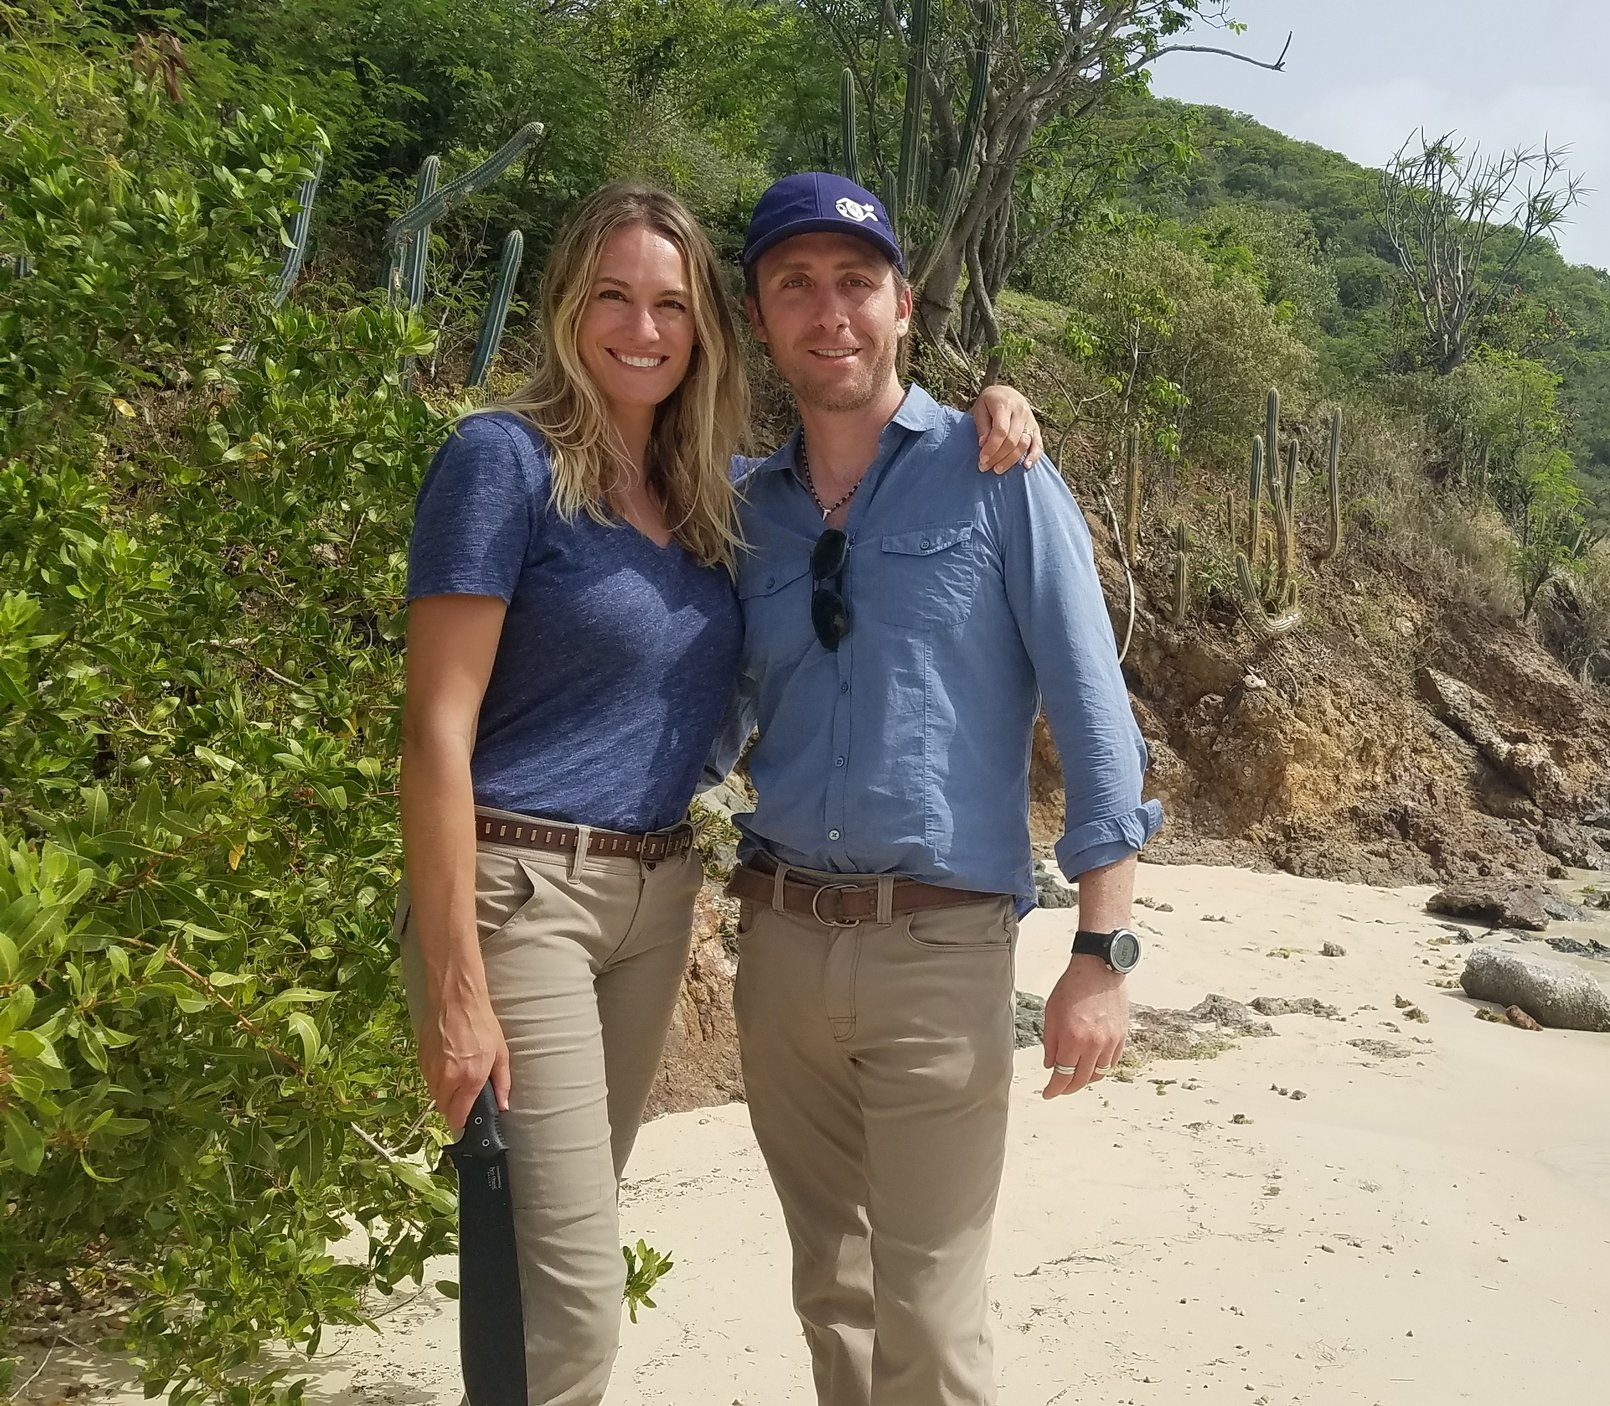 Philippe and Ashlan on location in Tortola